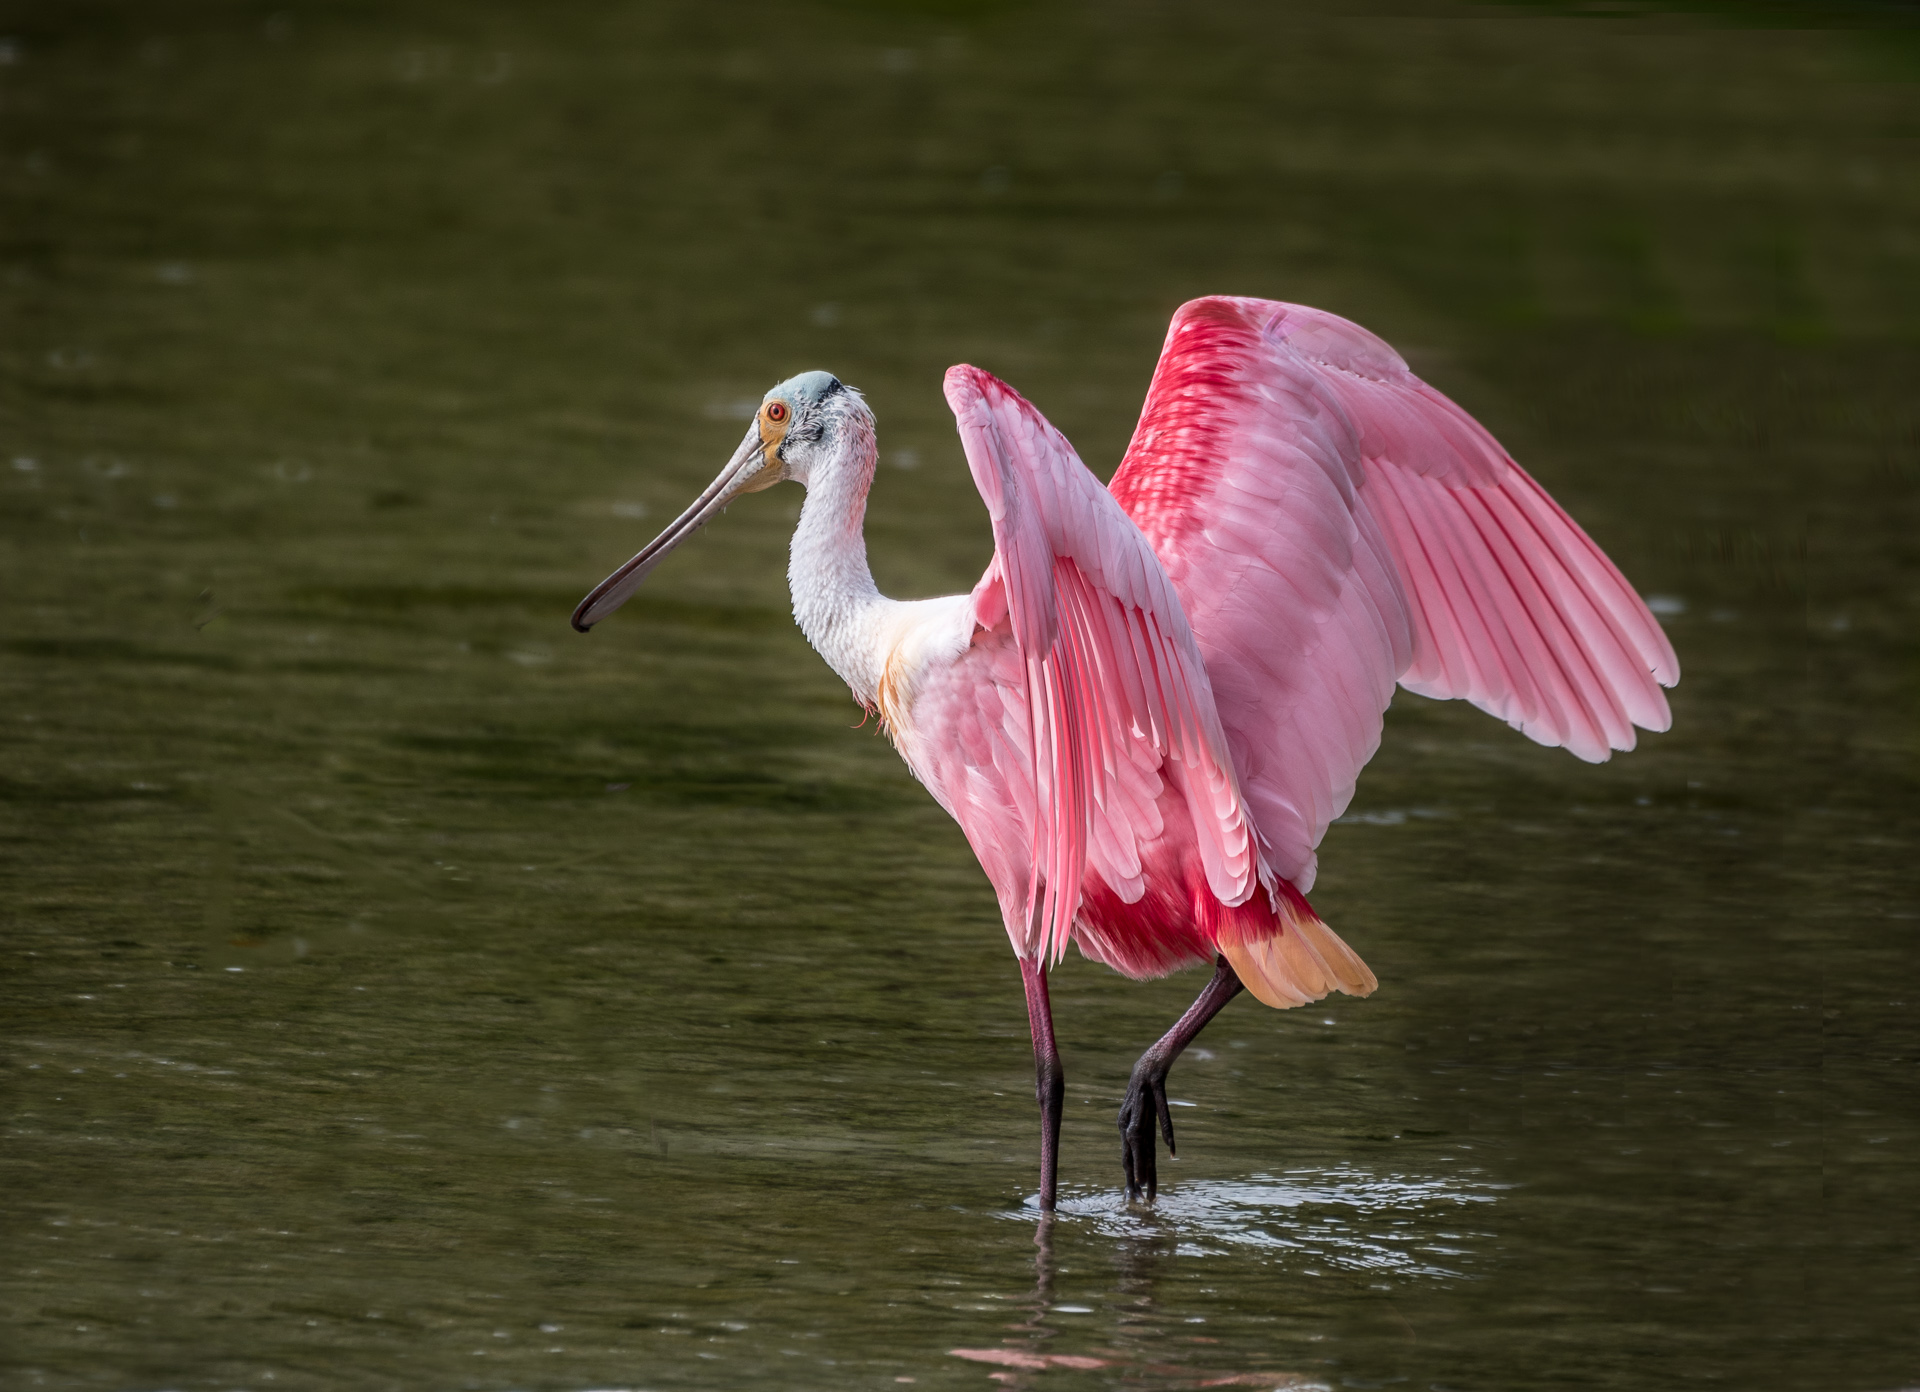 Roseate Spoonbill at Ding Darling - Color Print (Open) - Name Withheld Per Request